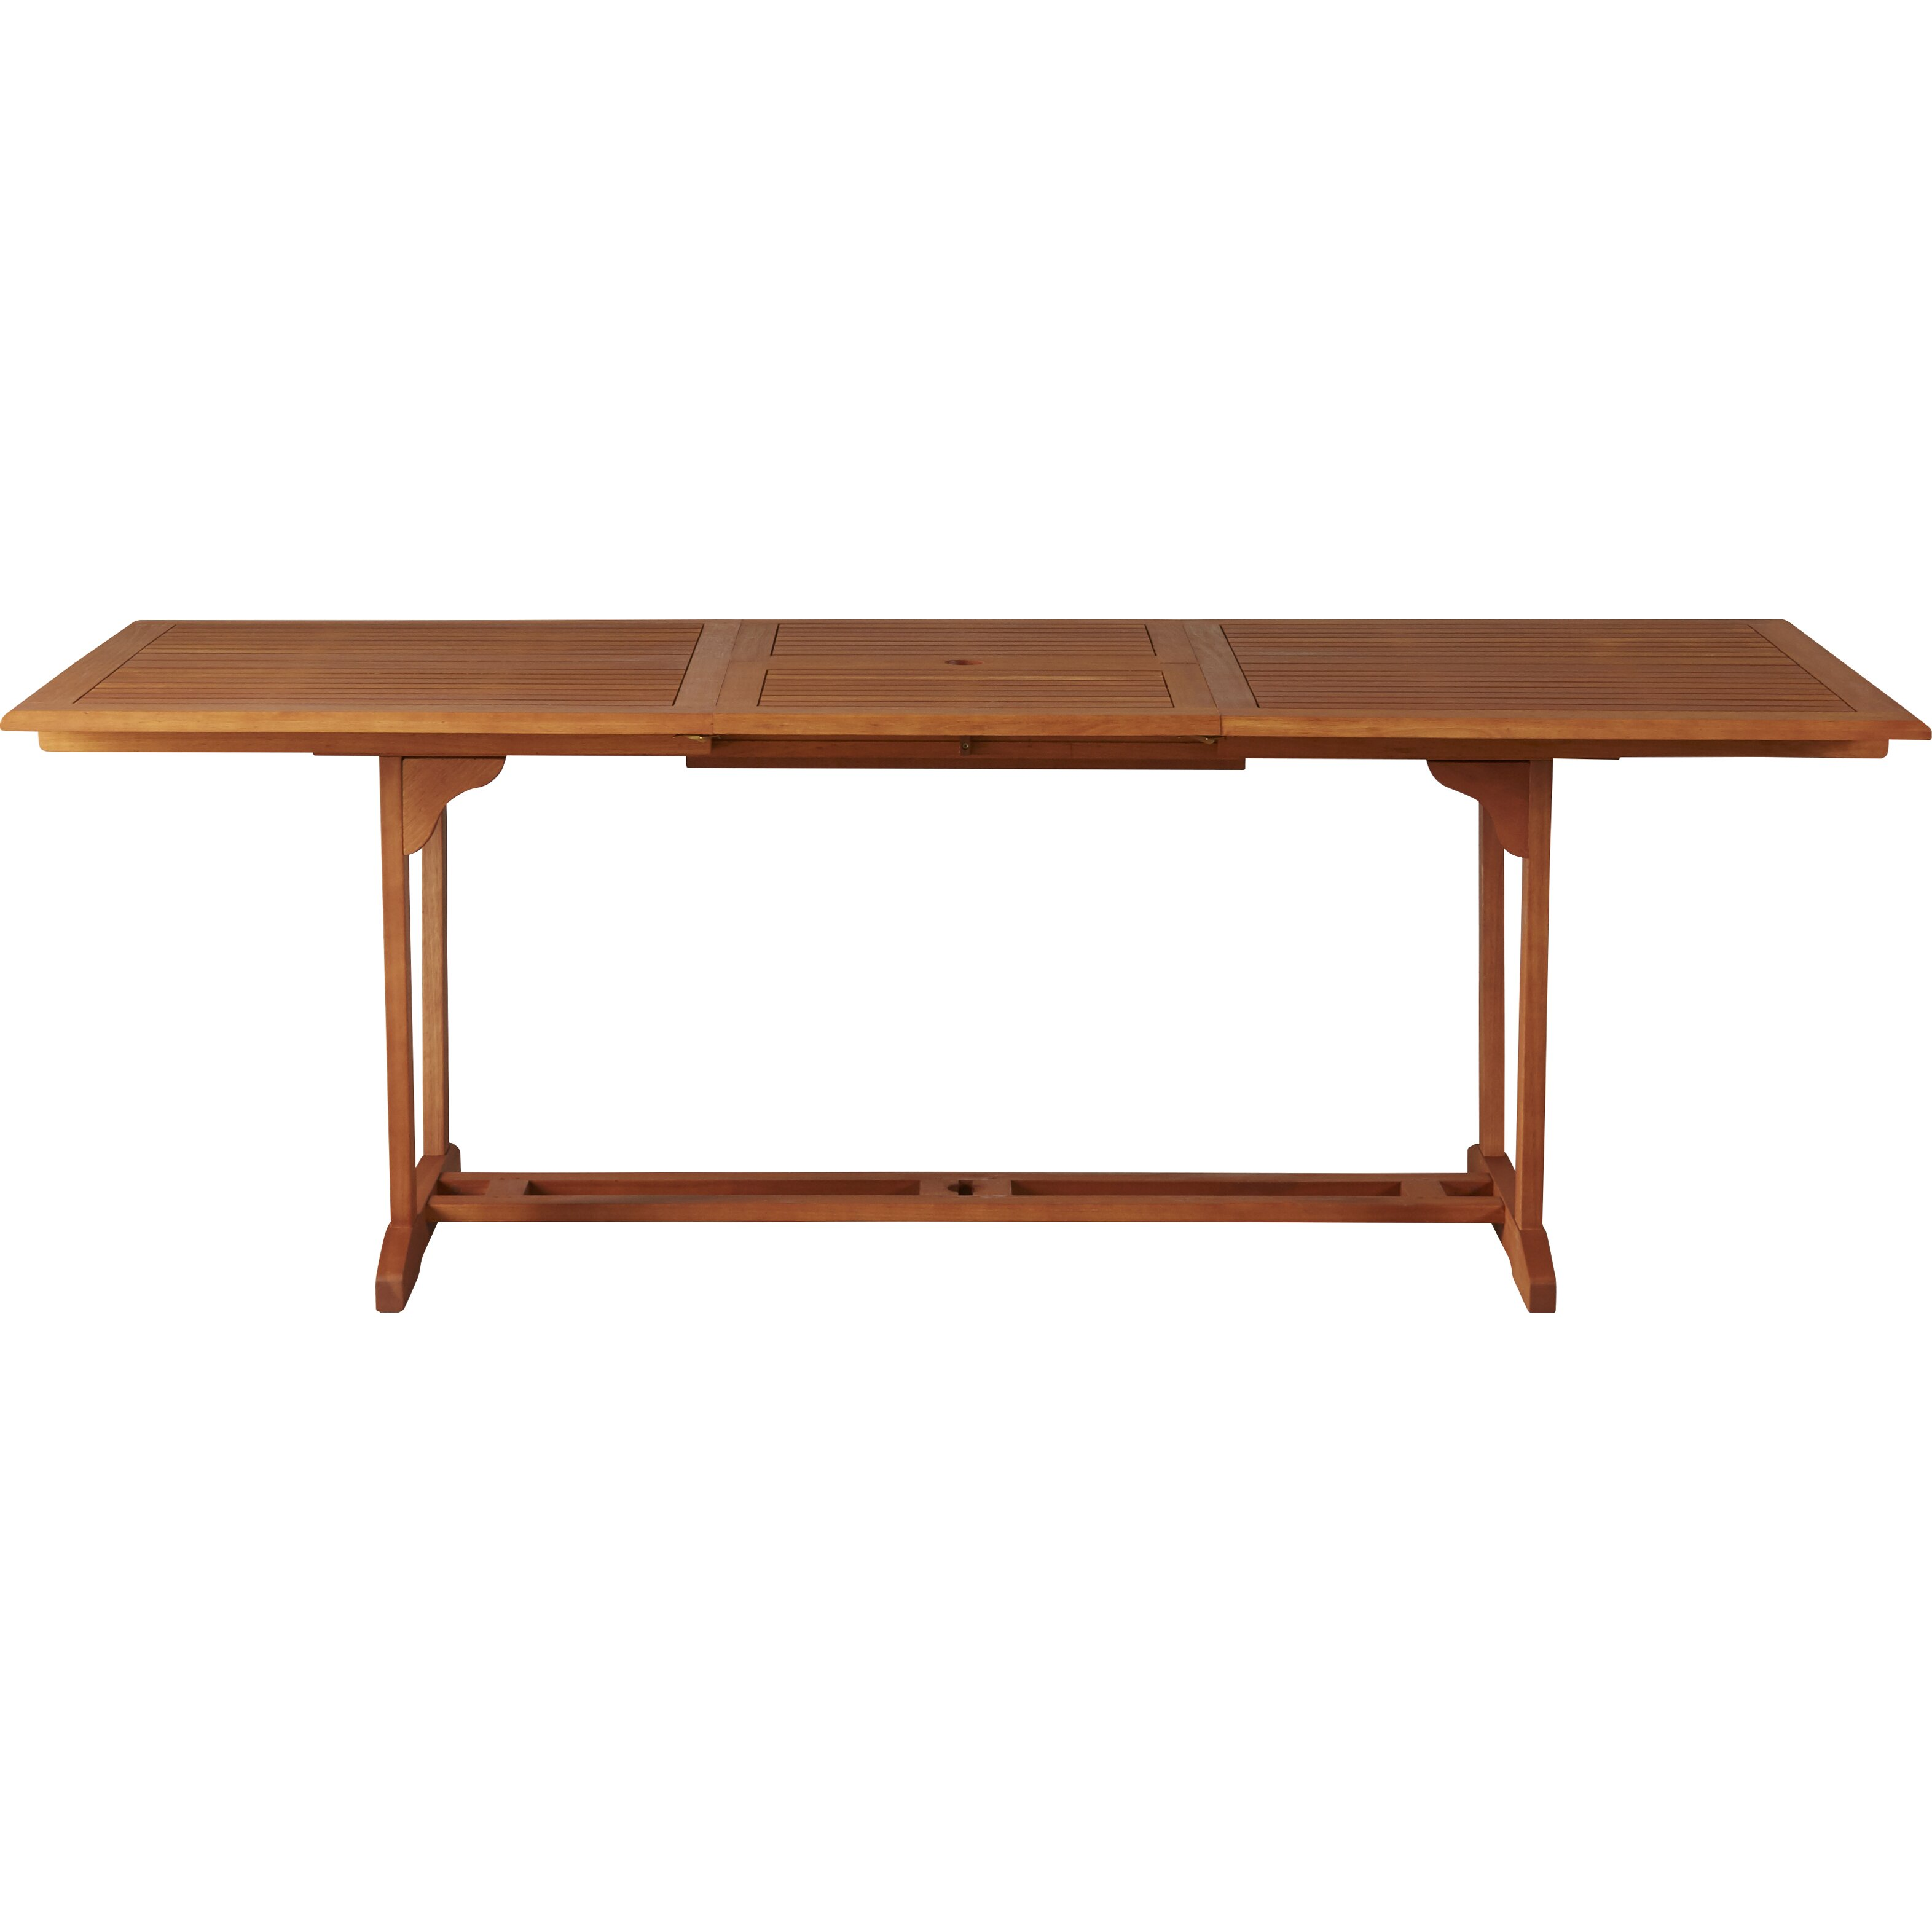 Darby home co goolsby rectangular extension dining table for Wayfair dining table